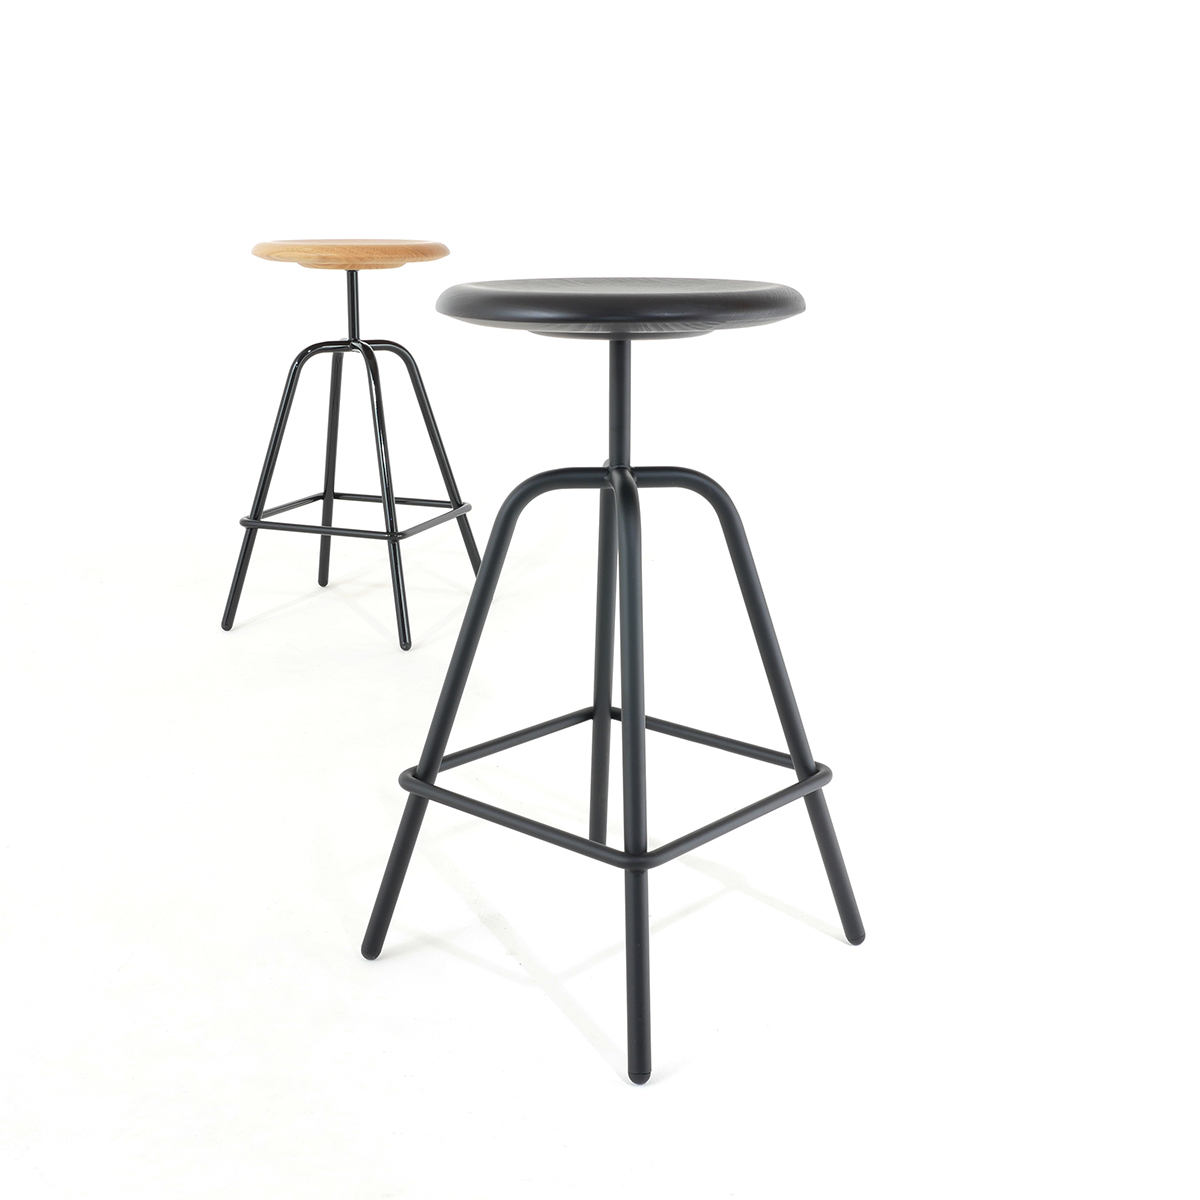 ATELIERHAUSSMANN_HERRENBERGER_HOCKER_STOOL_barhocker- design berlin_made in Germany_